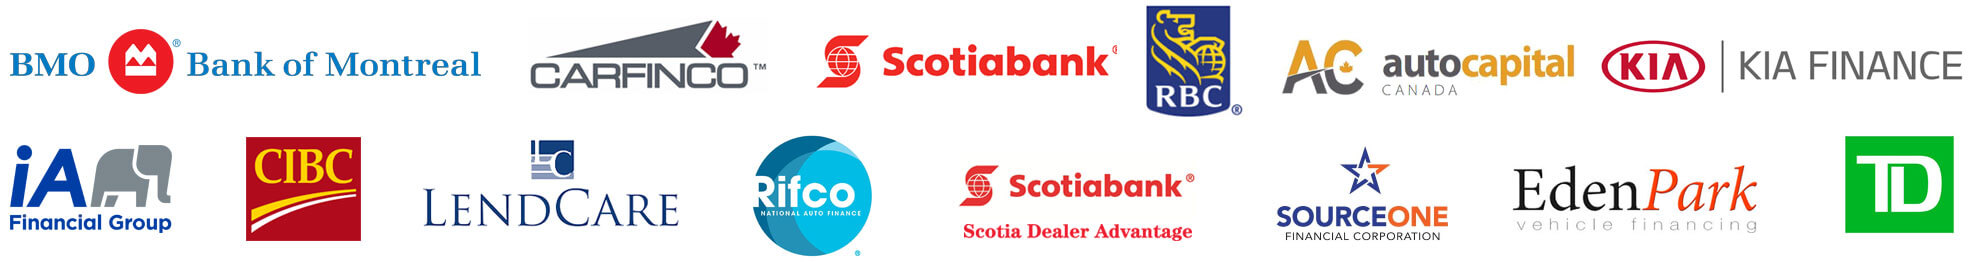 World Class Auto, Bank Logos